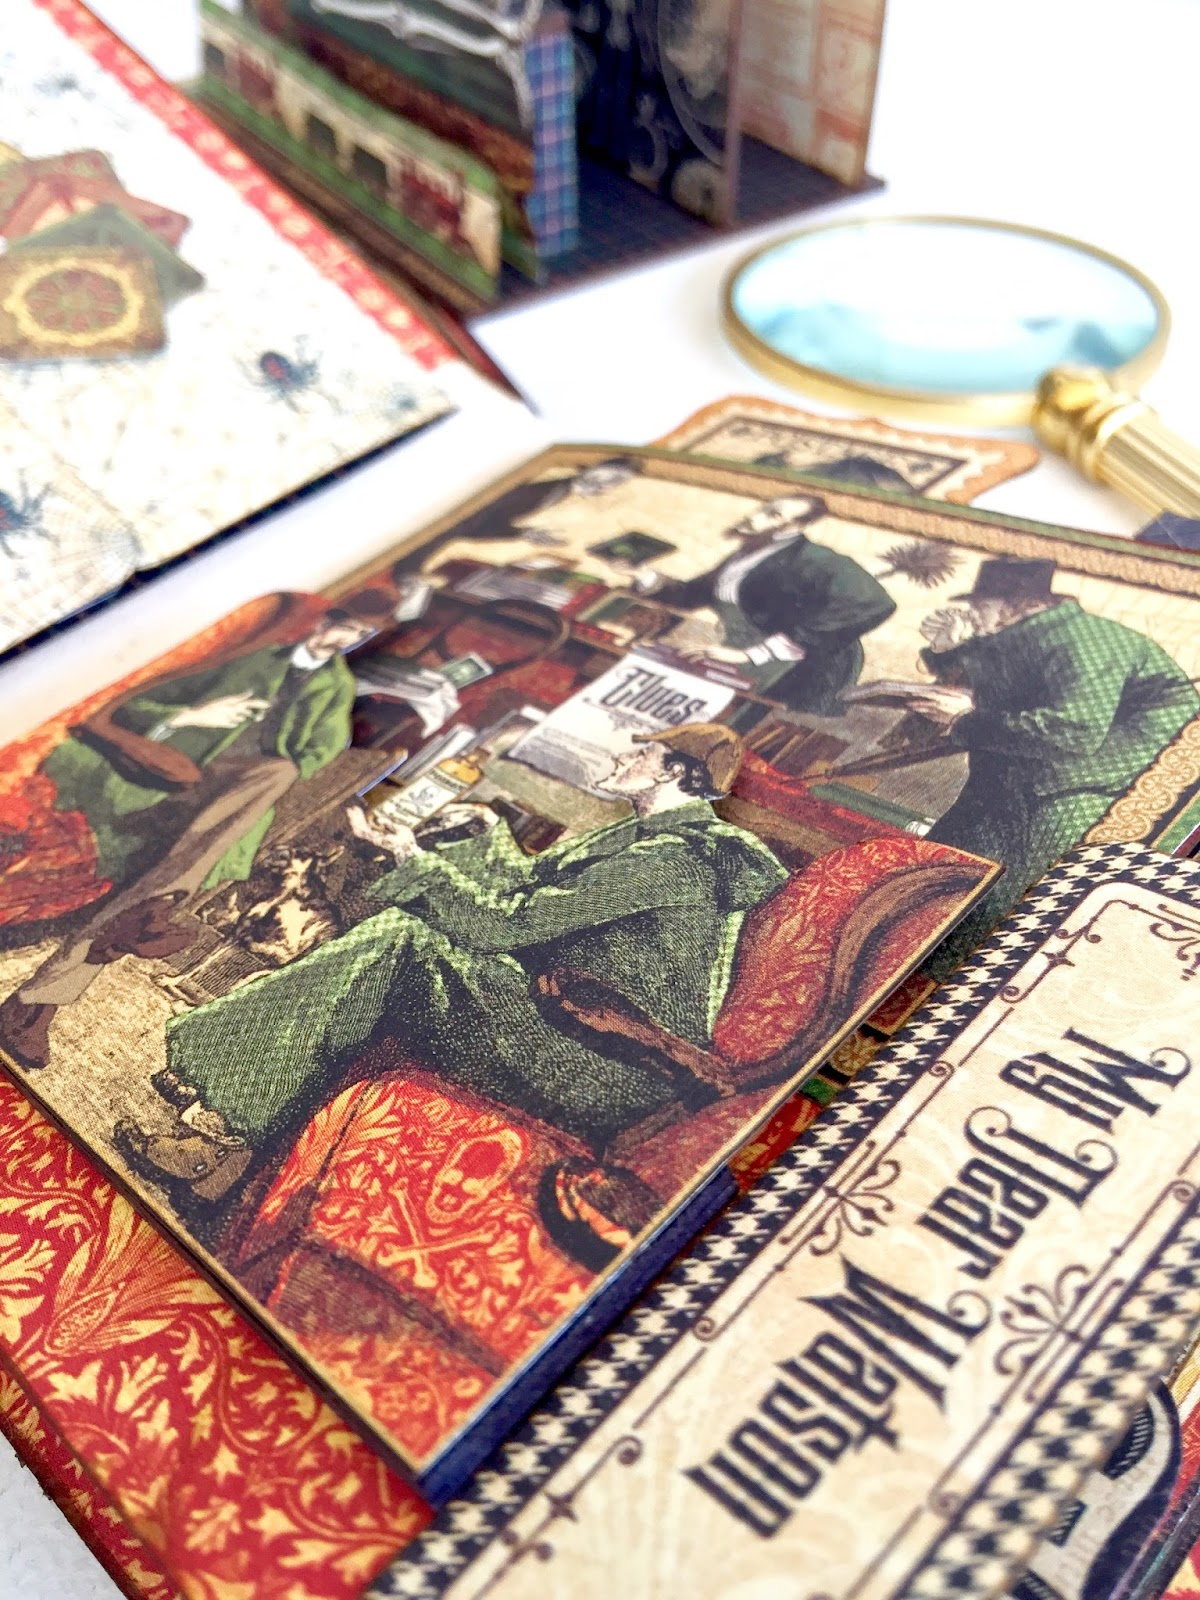 Stand and Mini Album Master Detective by Marina Blaukitchen Product by Graphic 45 photo 11.jpg